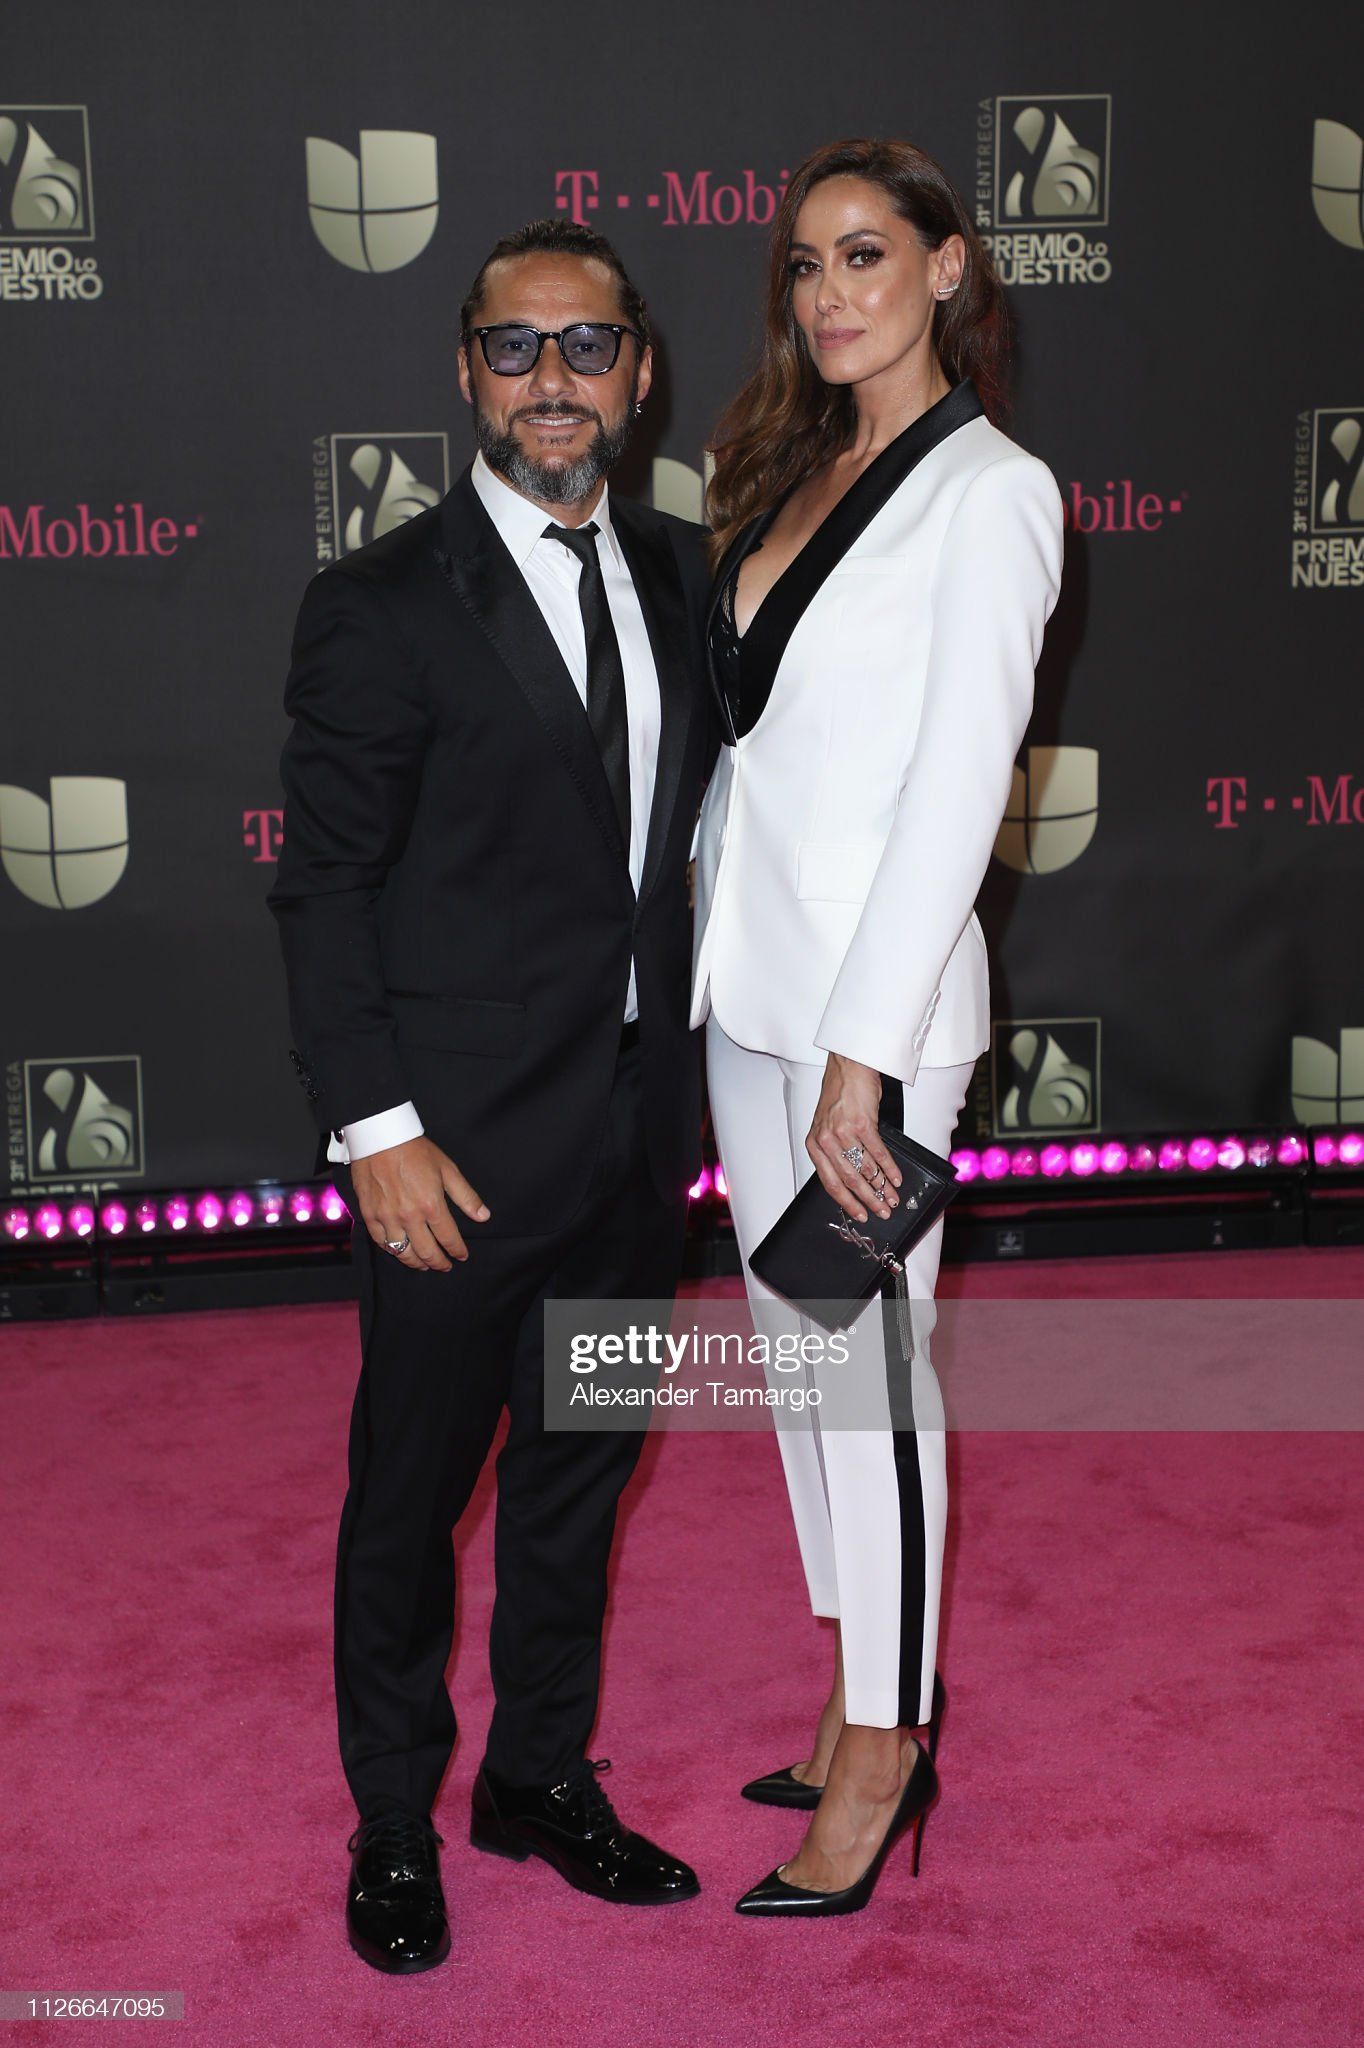 ¿Cuánto mide Diego Torres? - Altura Diego-torres-and-debora-bello-attend-univisions-31st-edition-of-lo-picture-id1126647095?s=2048x2048